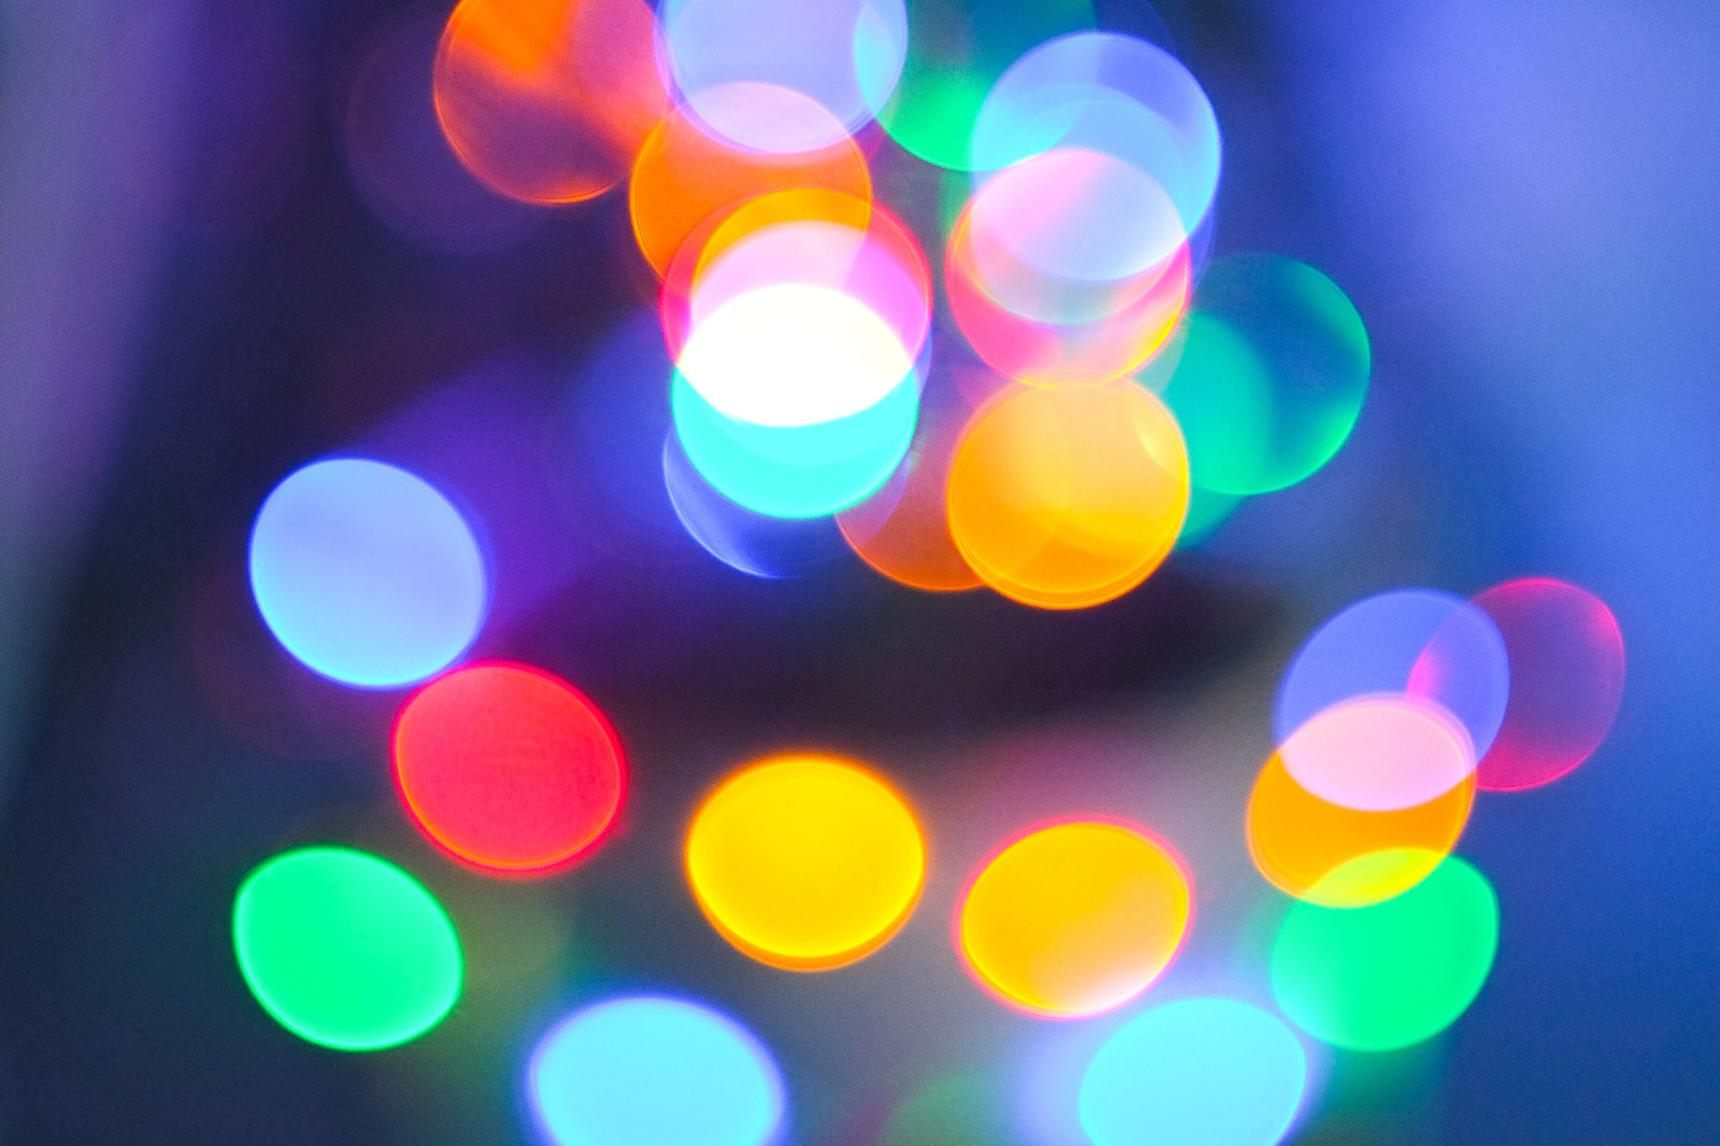 Defocused image of illuminated colorful Xmas lights